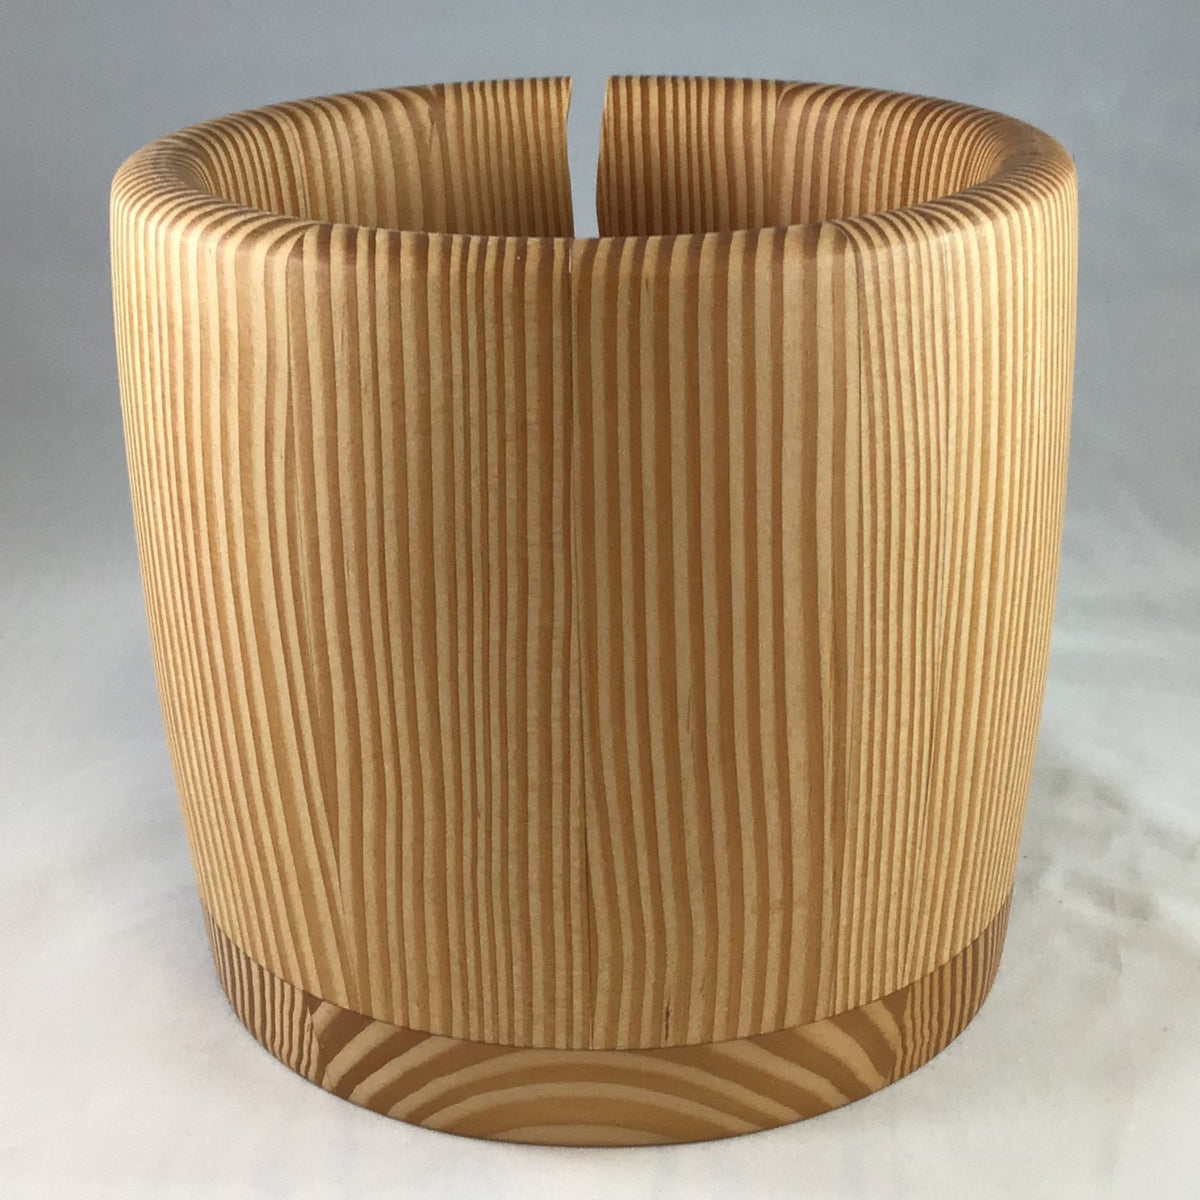 A wooden yarn bowl made from Douglas Fir wood against a white backdrop